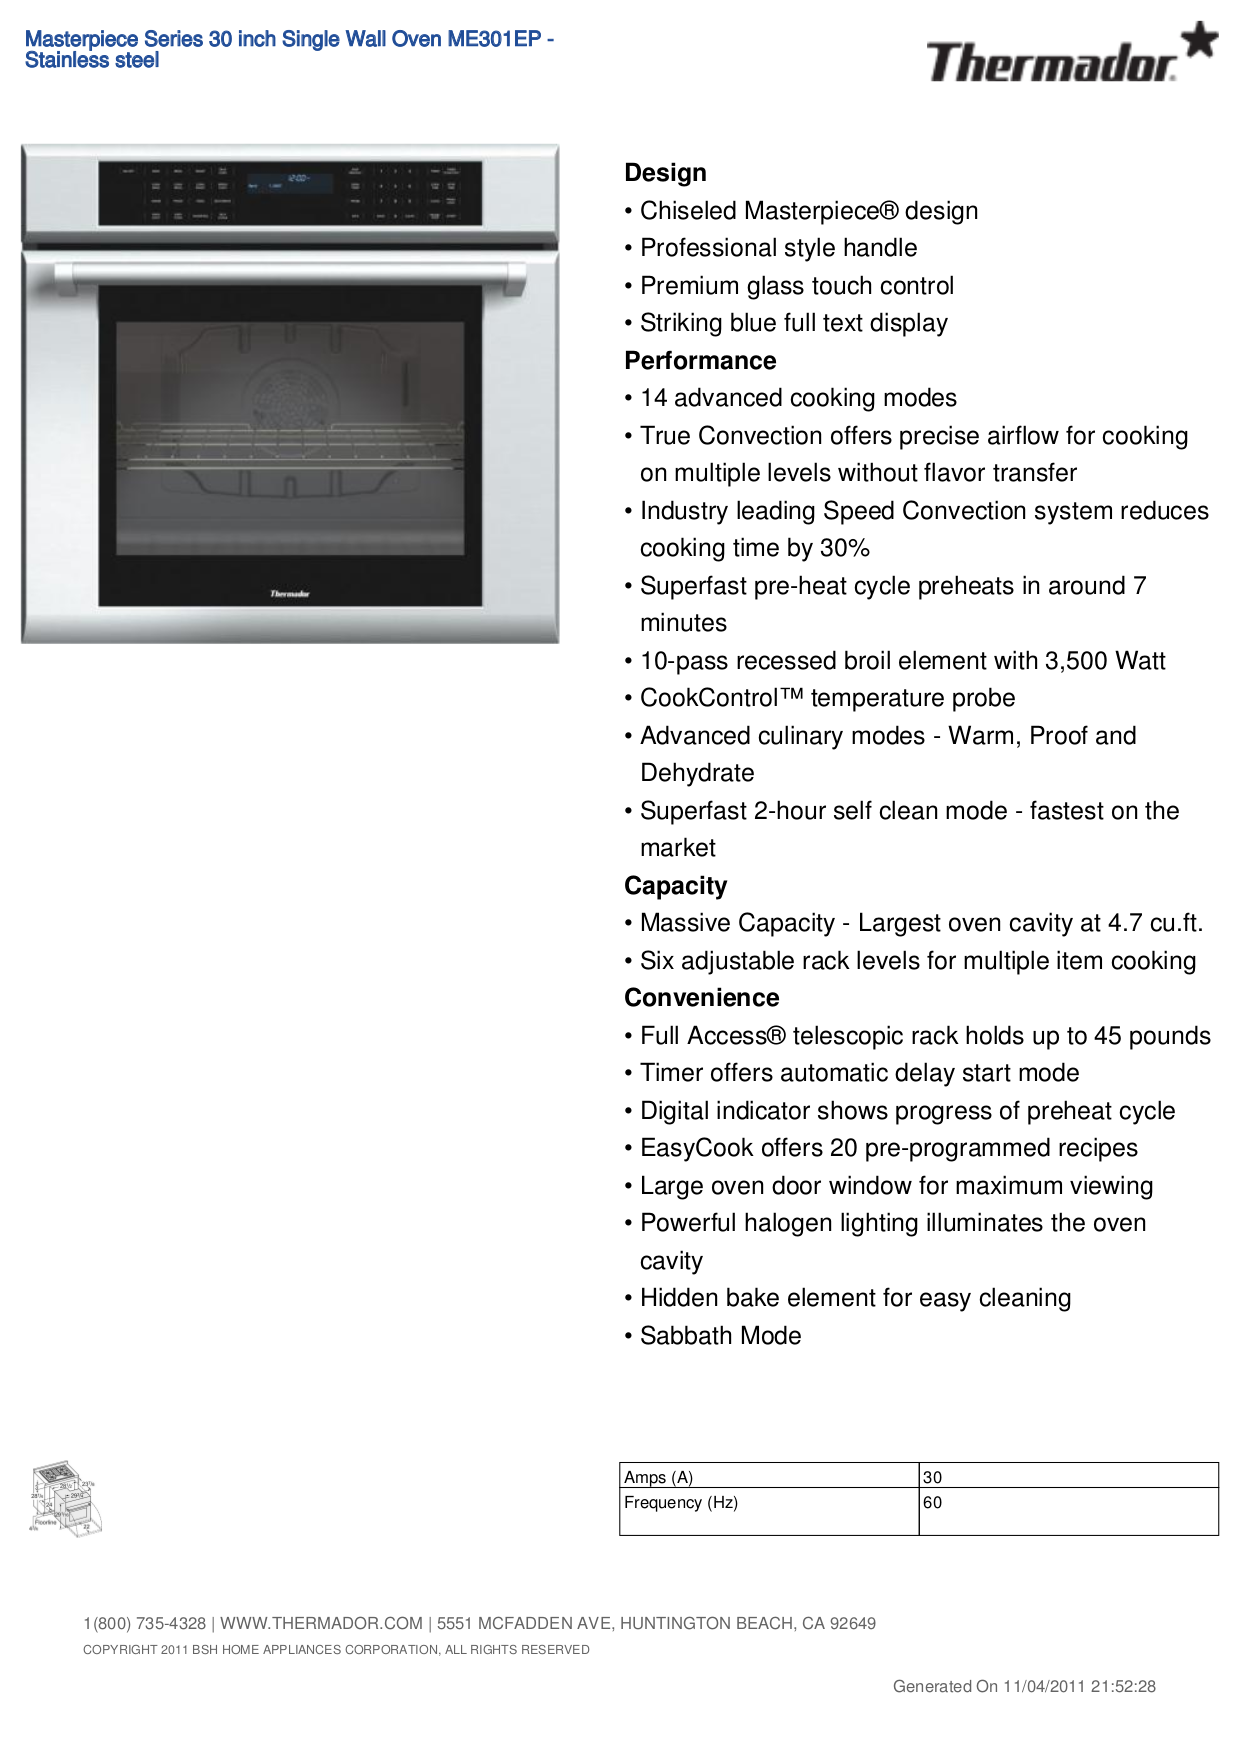 pdf for Thermador Oven ME301EP manual